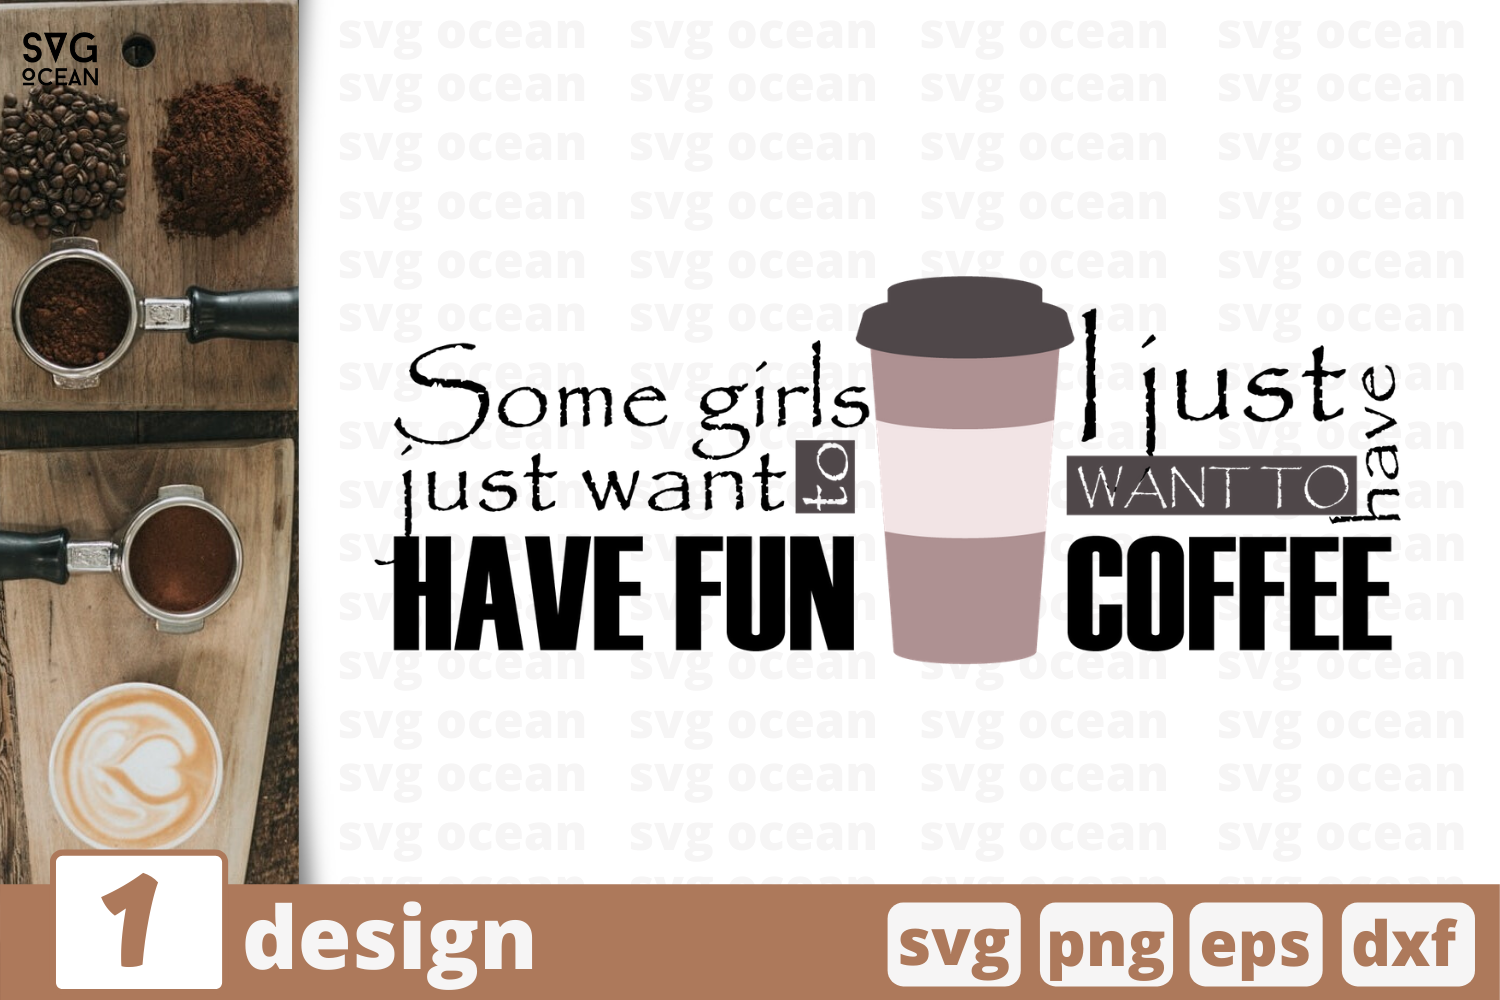 1 Have Fun Coffee Svg Bundle Quotes Cricut Svg By Svgocean